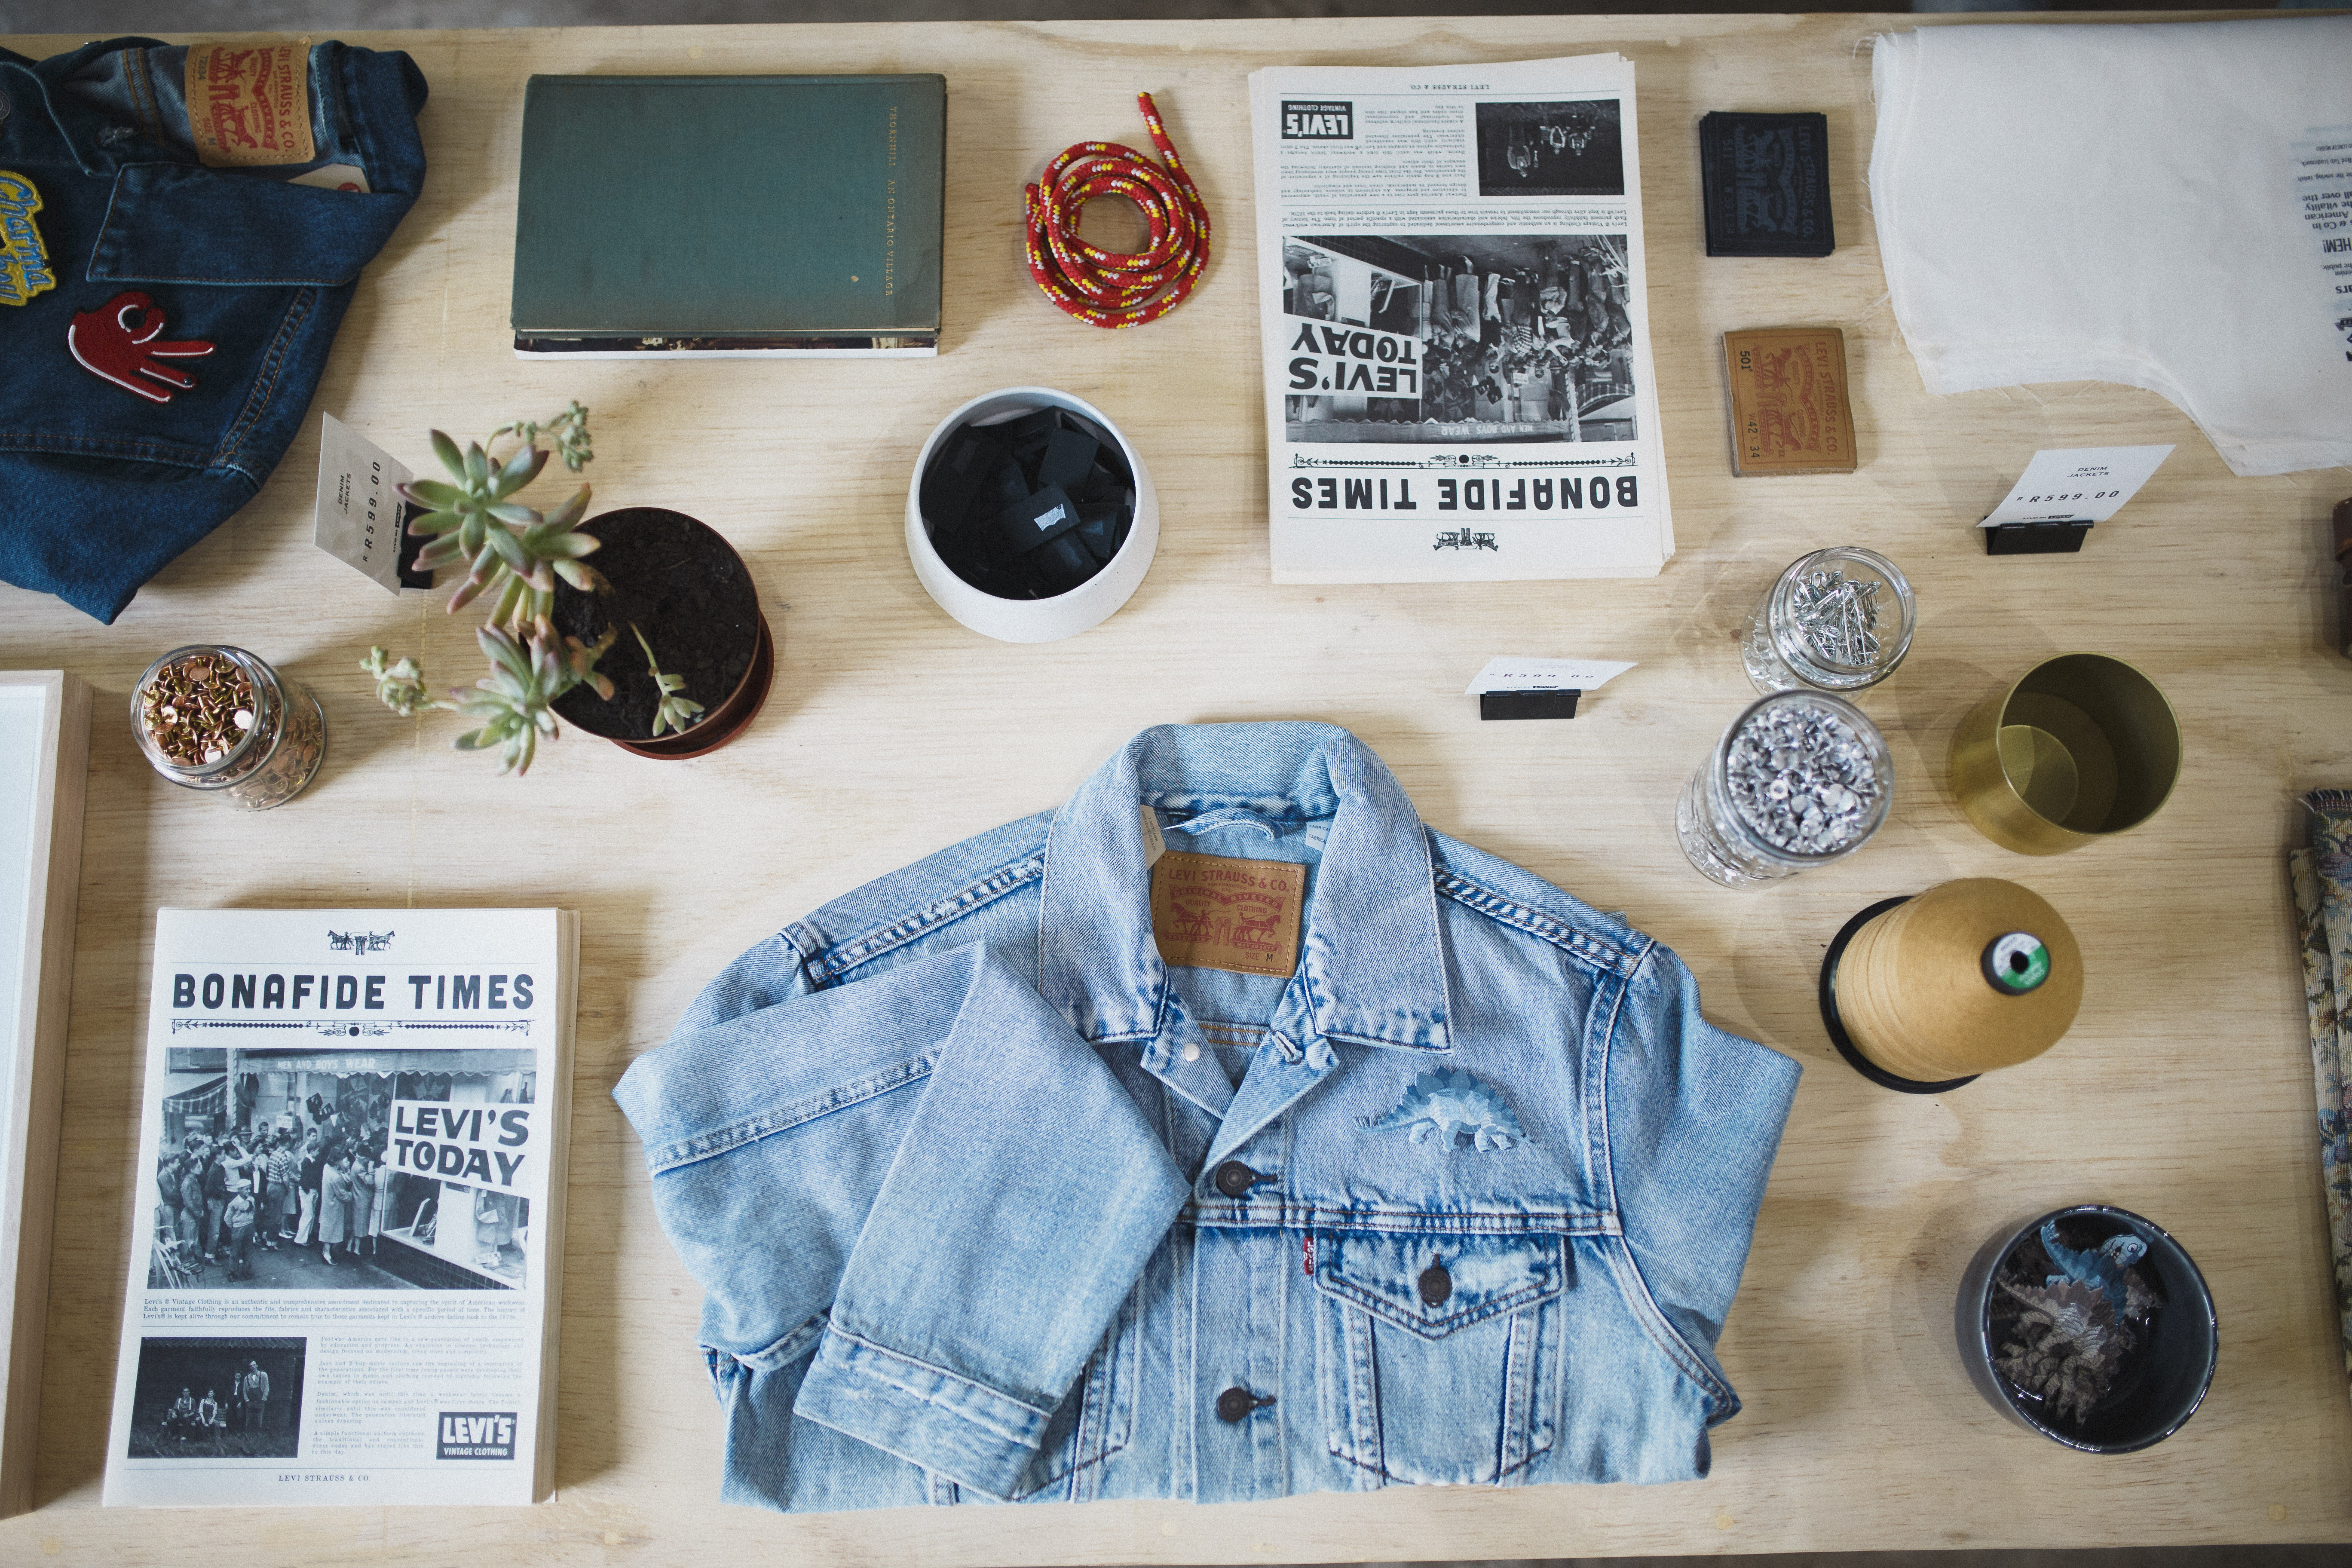 LEVI'S Introduces The Tailor Shop in Braam MG 0385